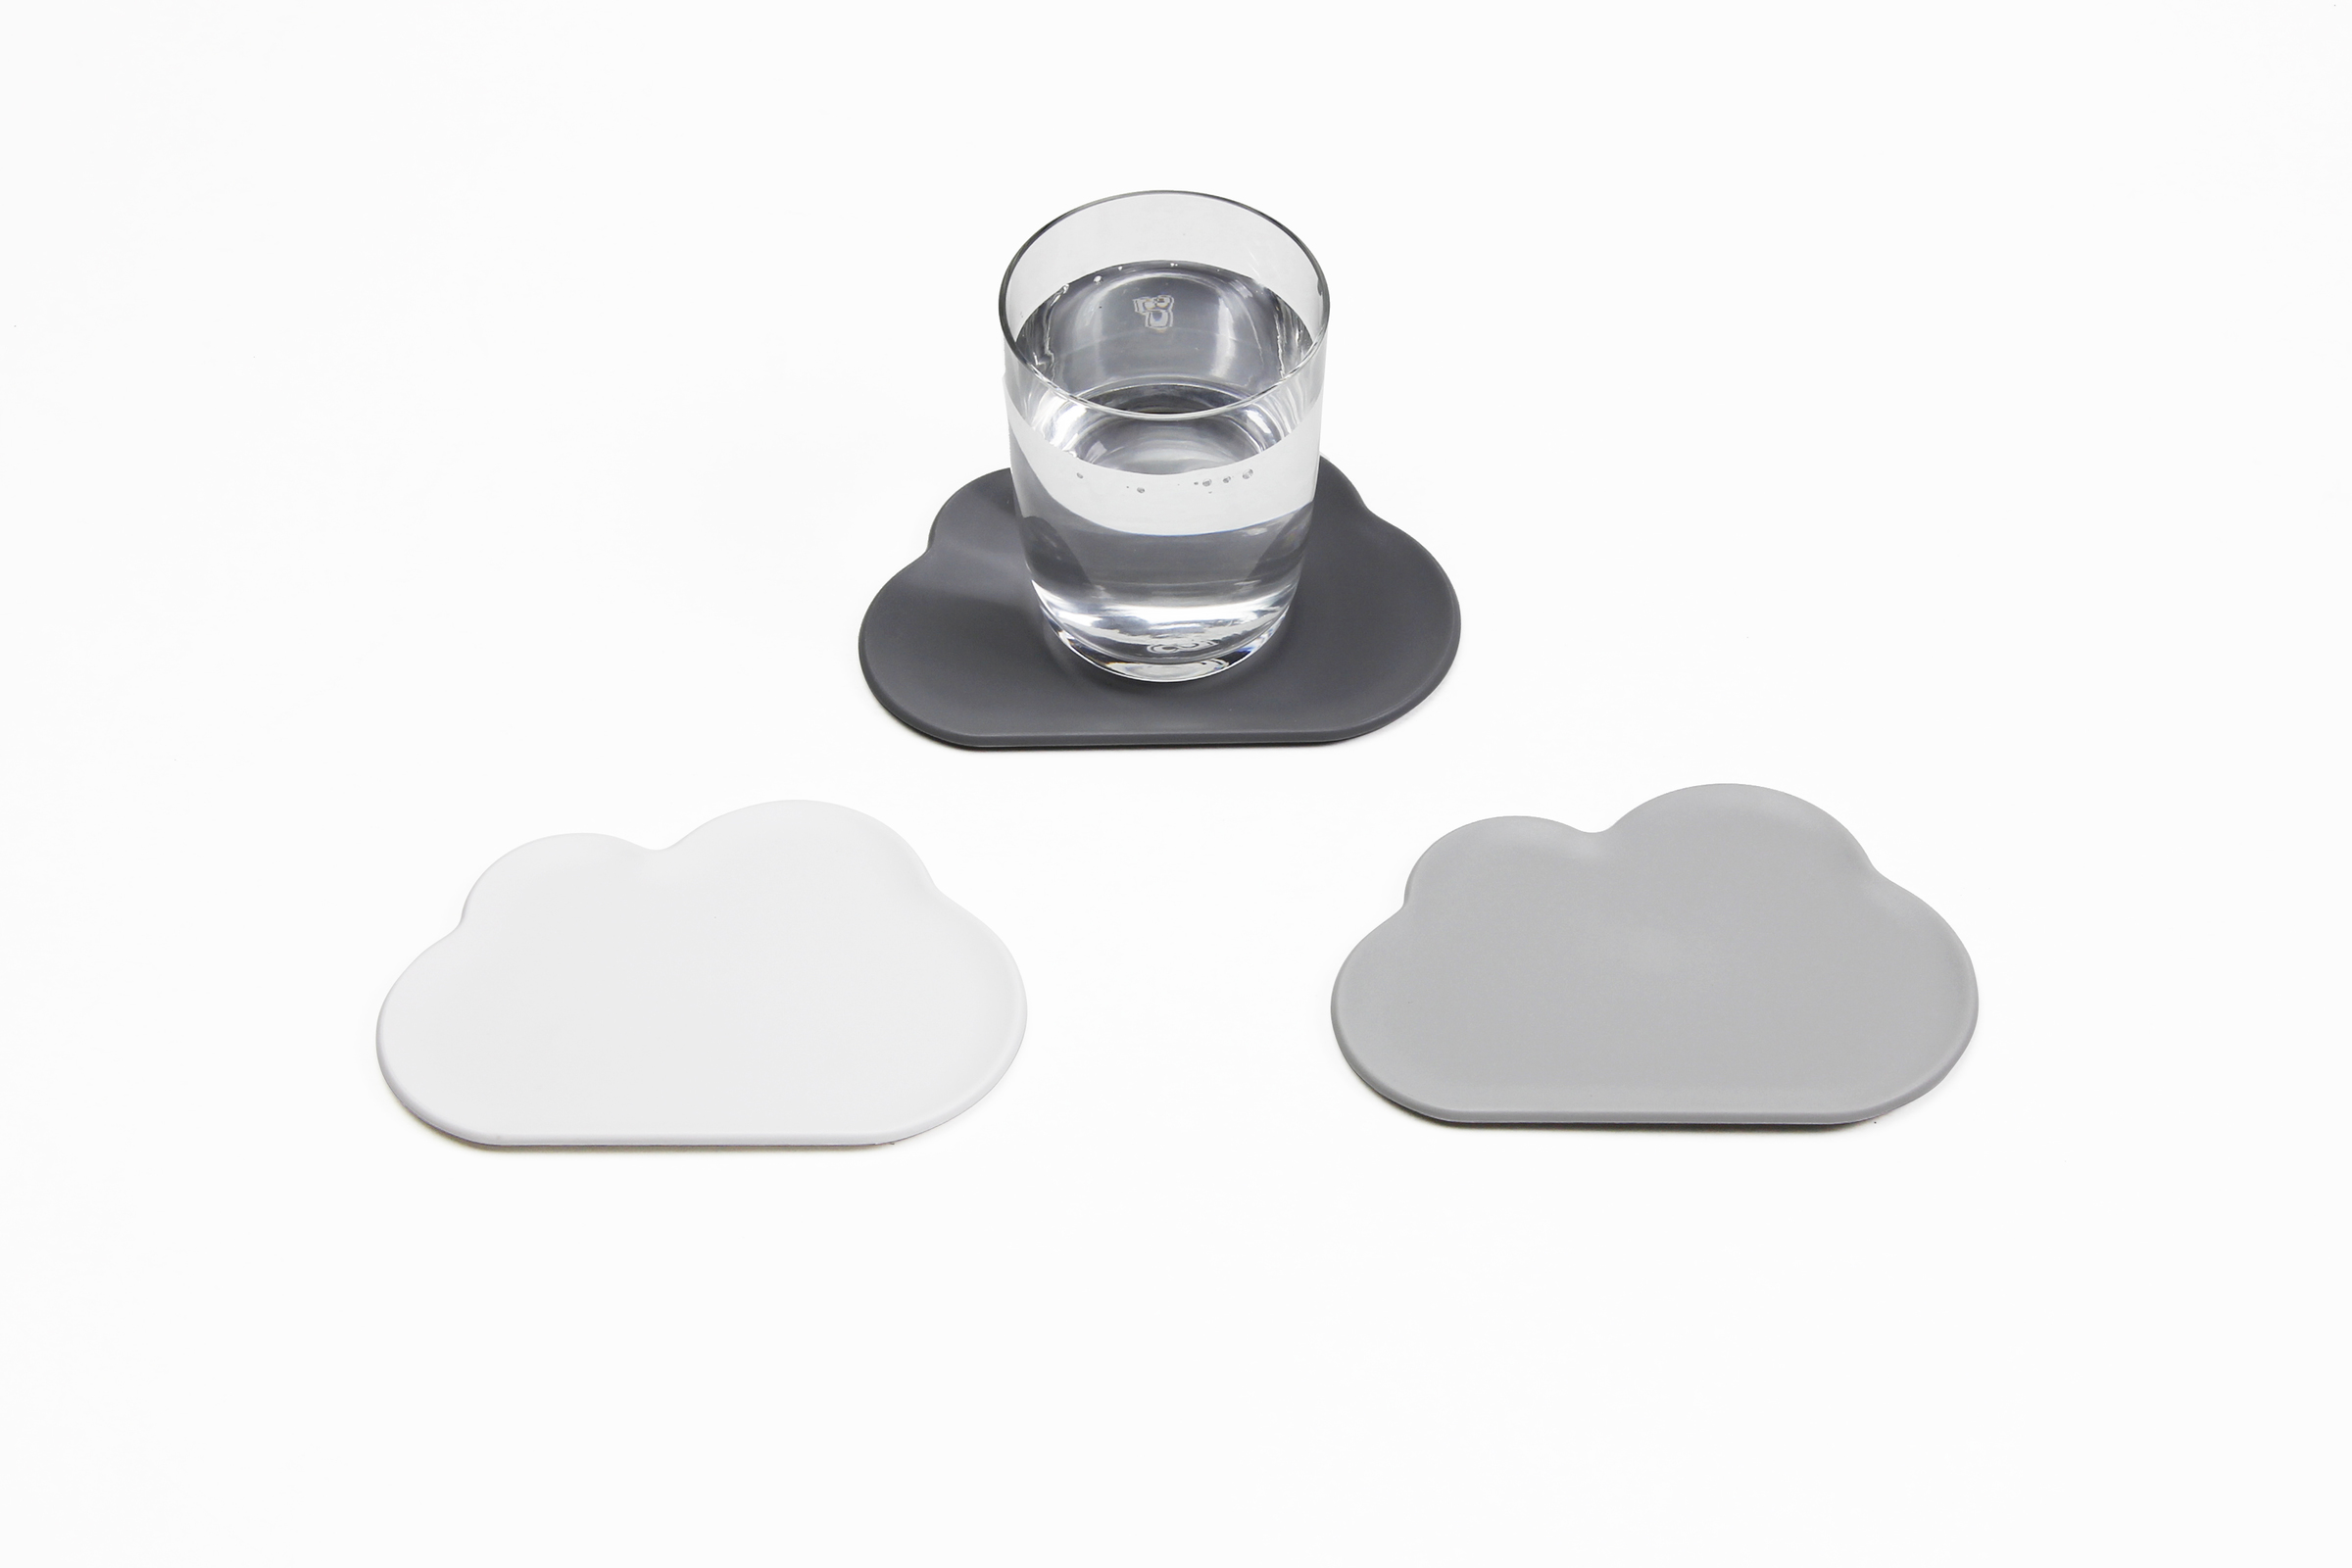 12.QL10257-MX CLOUD COASTER DIECUT.jpg